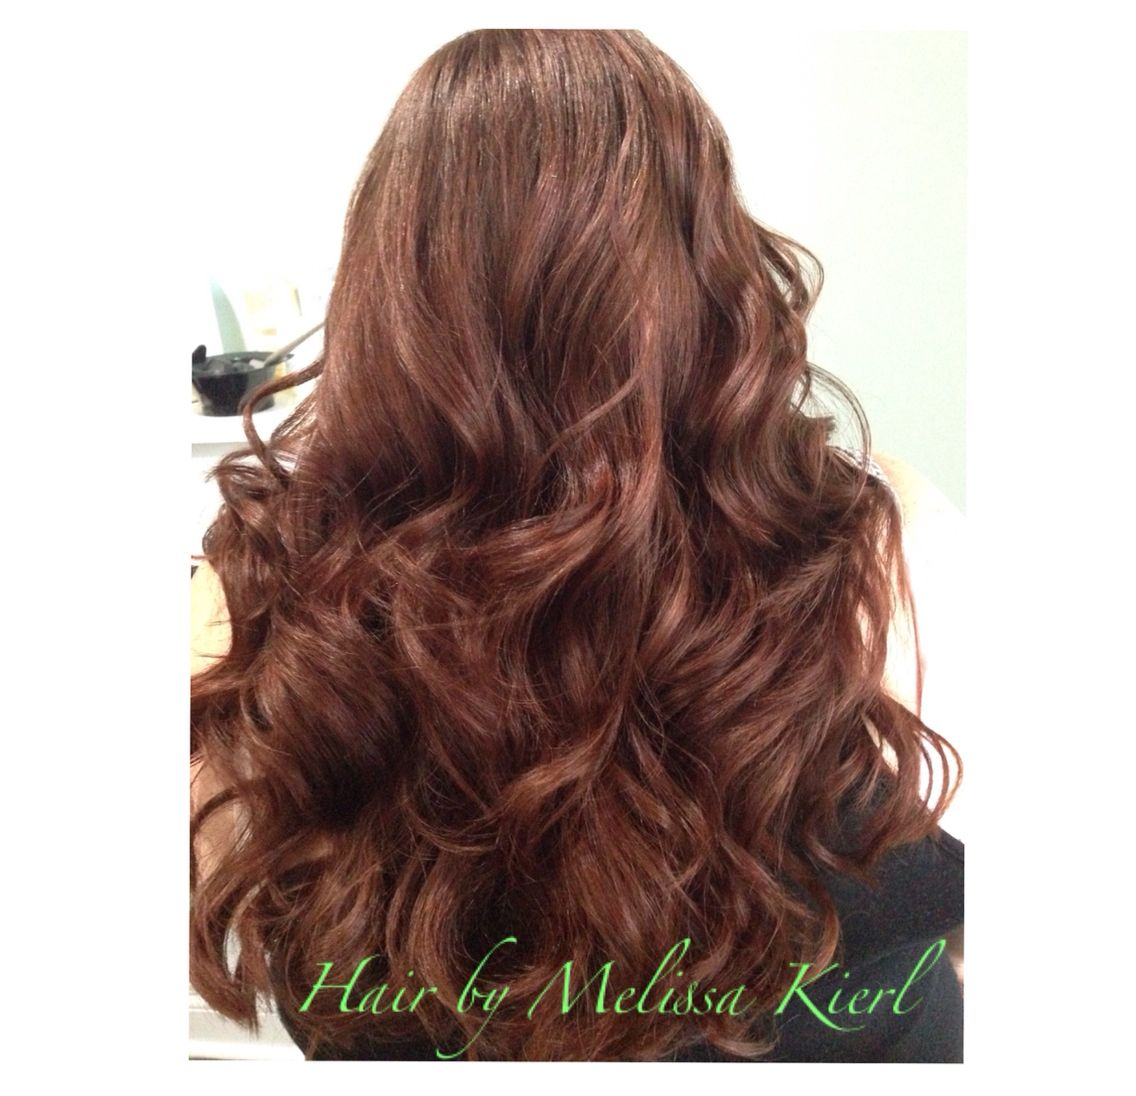 Auburn Hair Color With Curls Matrix Socolor Zone 1 3 Parts 5gc 1 Part 5m 20 Vol Zones 2 3 5gc With Equ Hair Color Formulas Hair Color Auburn Auburn Hair